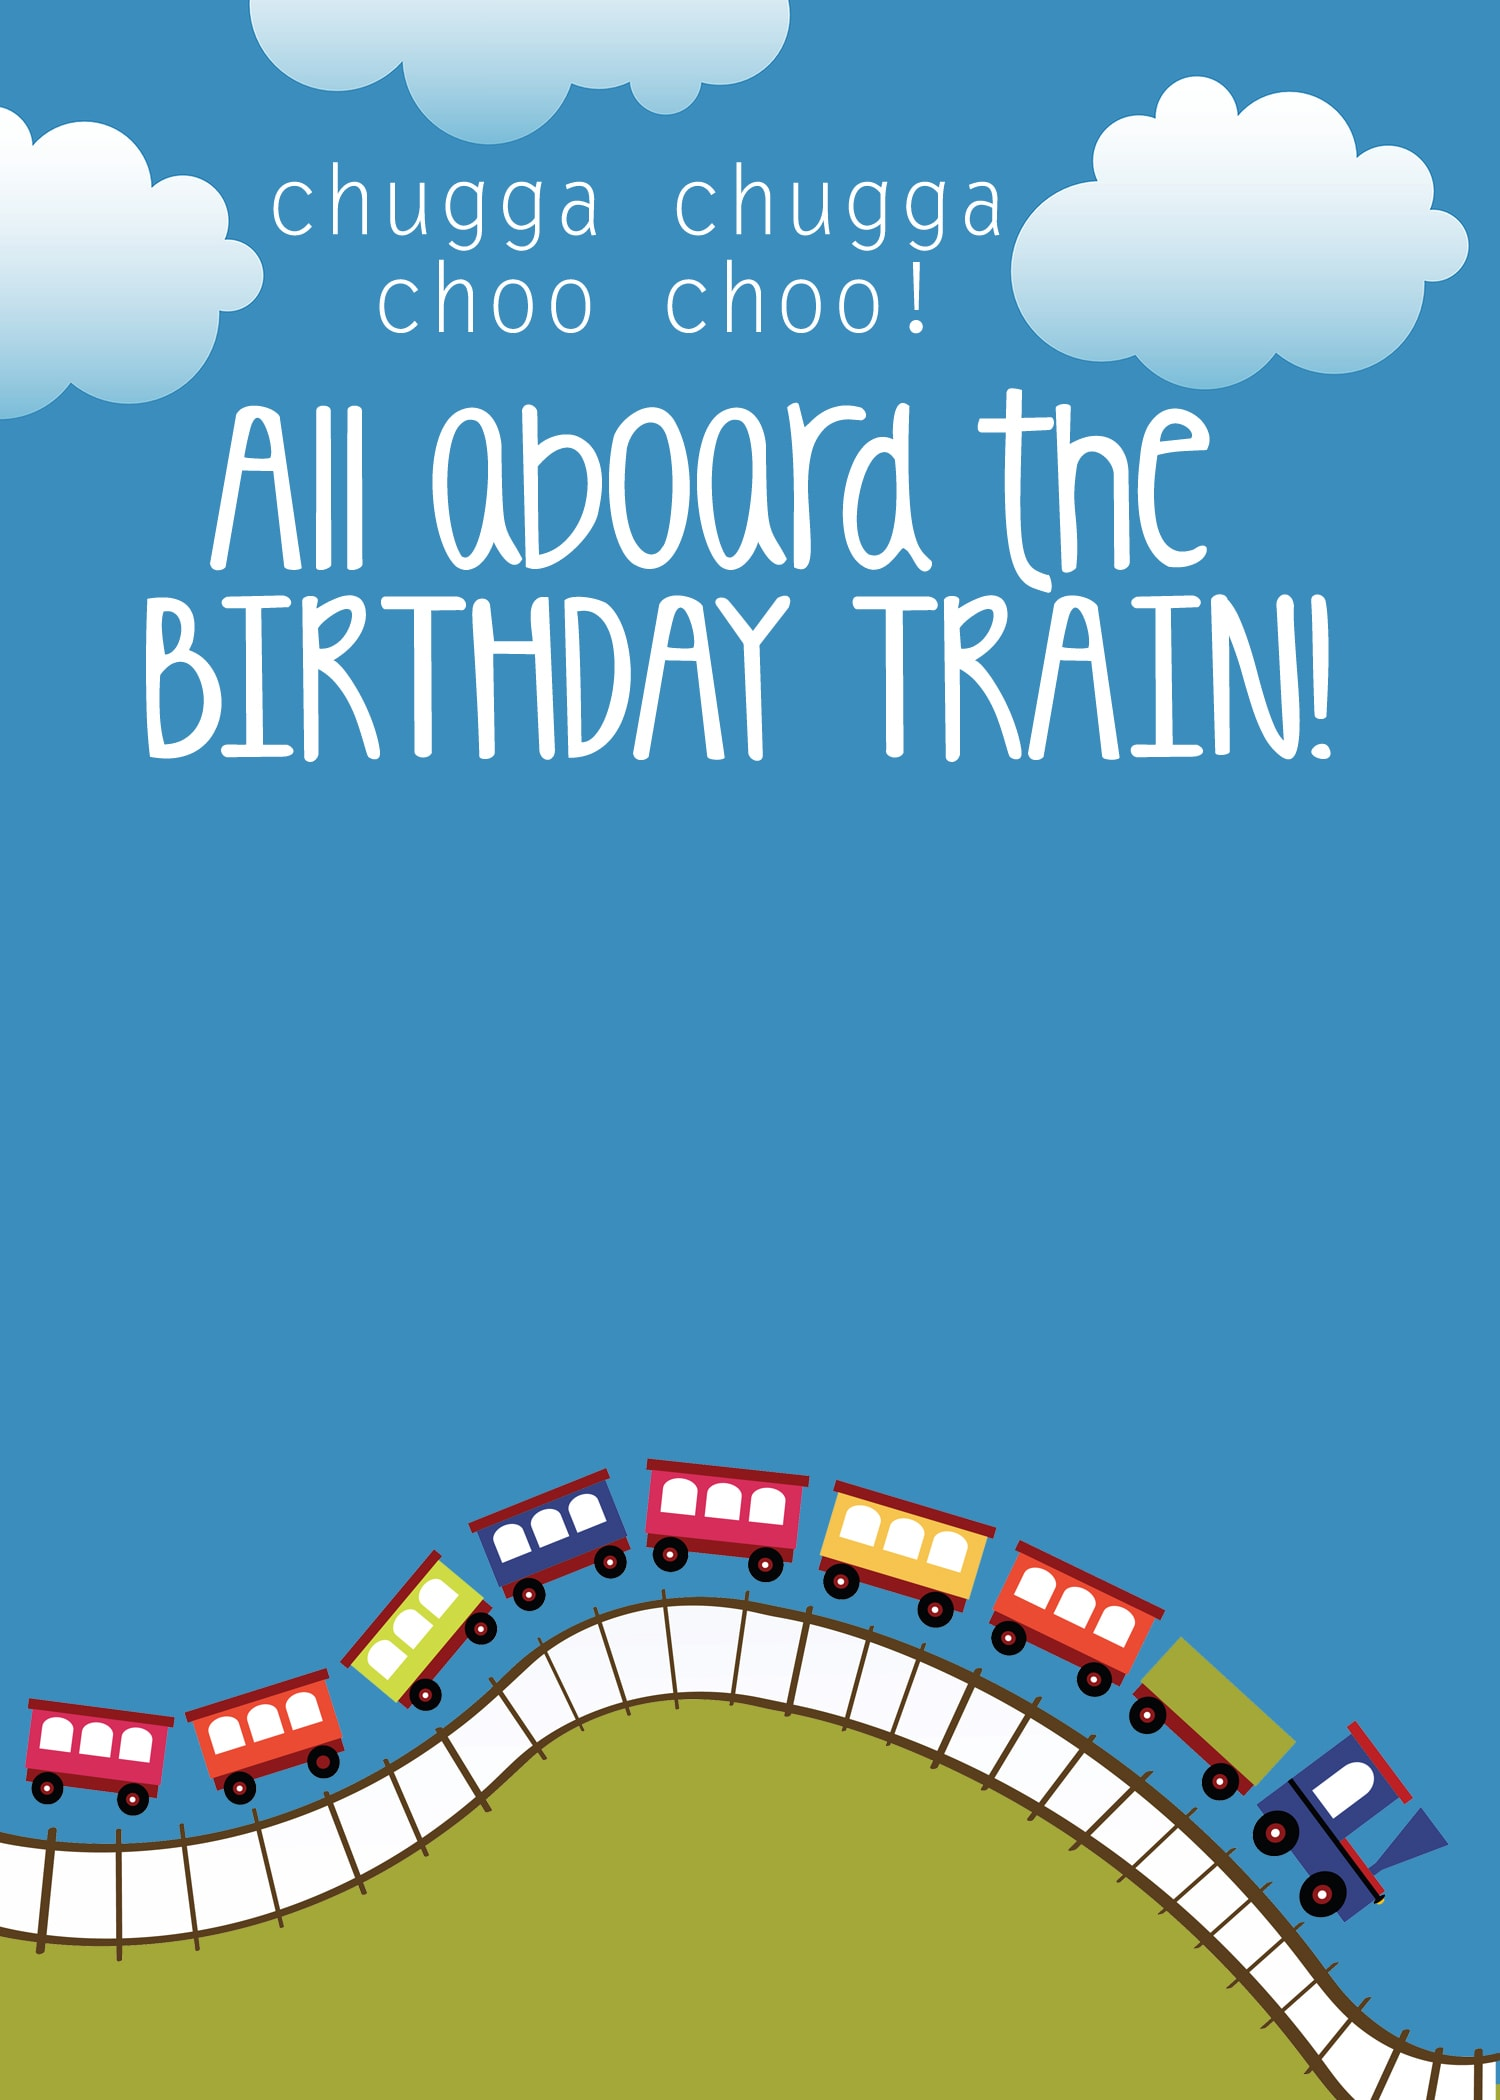 httpshowtonestforlesscomwp contentuploads201403train birthday party invitation templatejpg